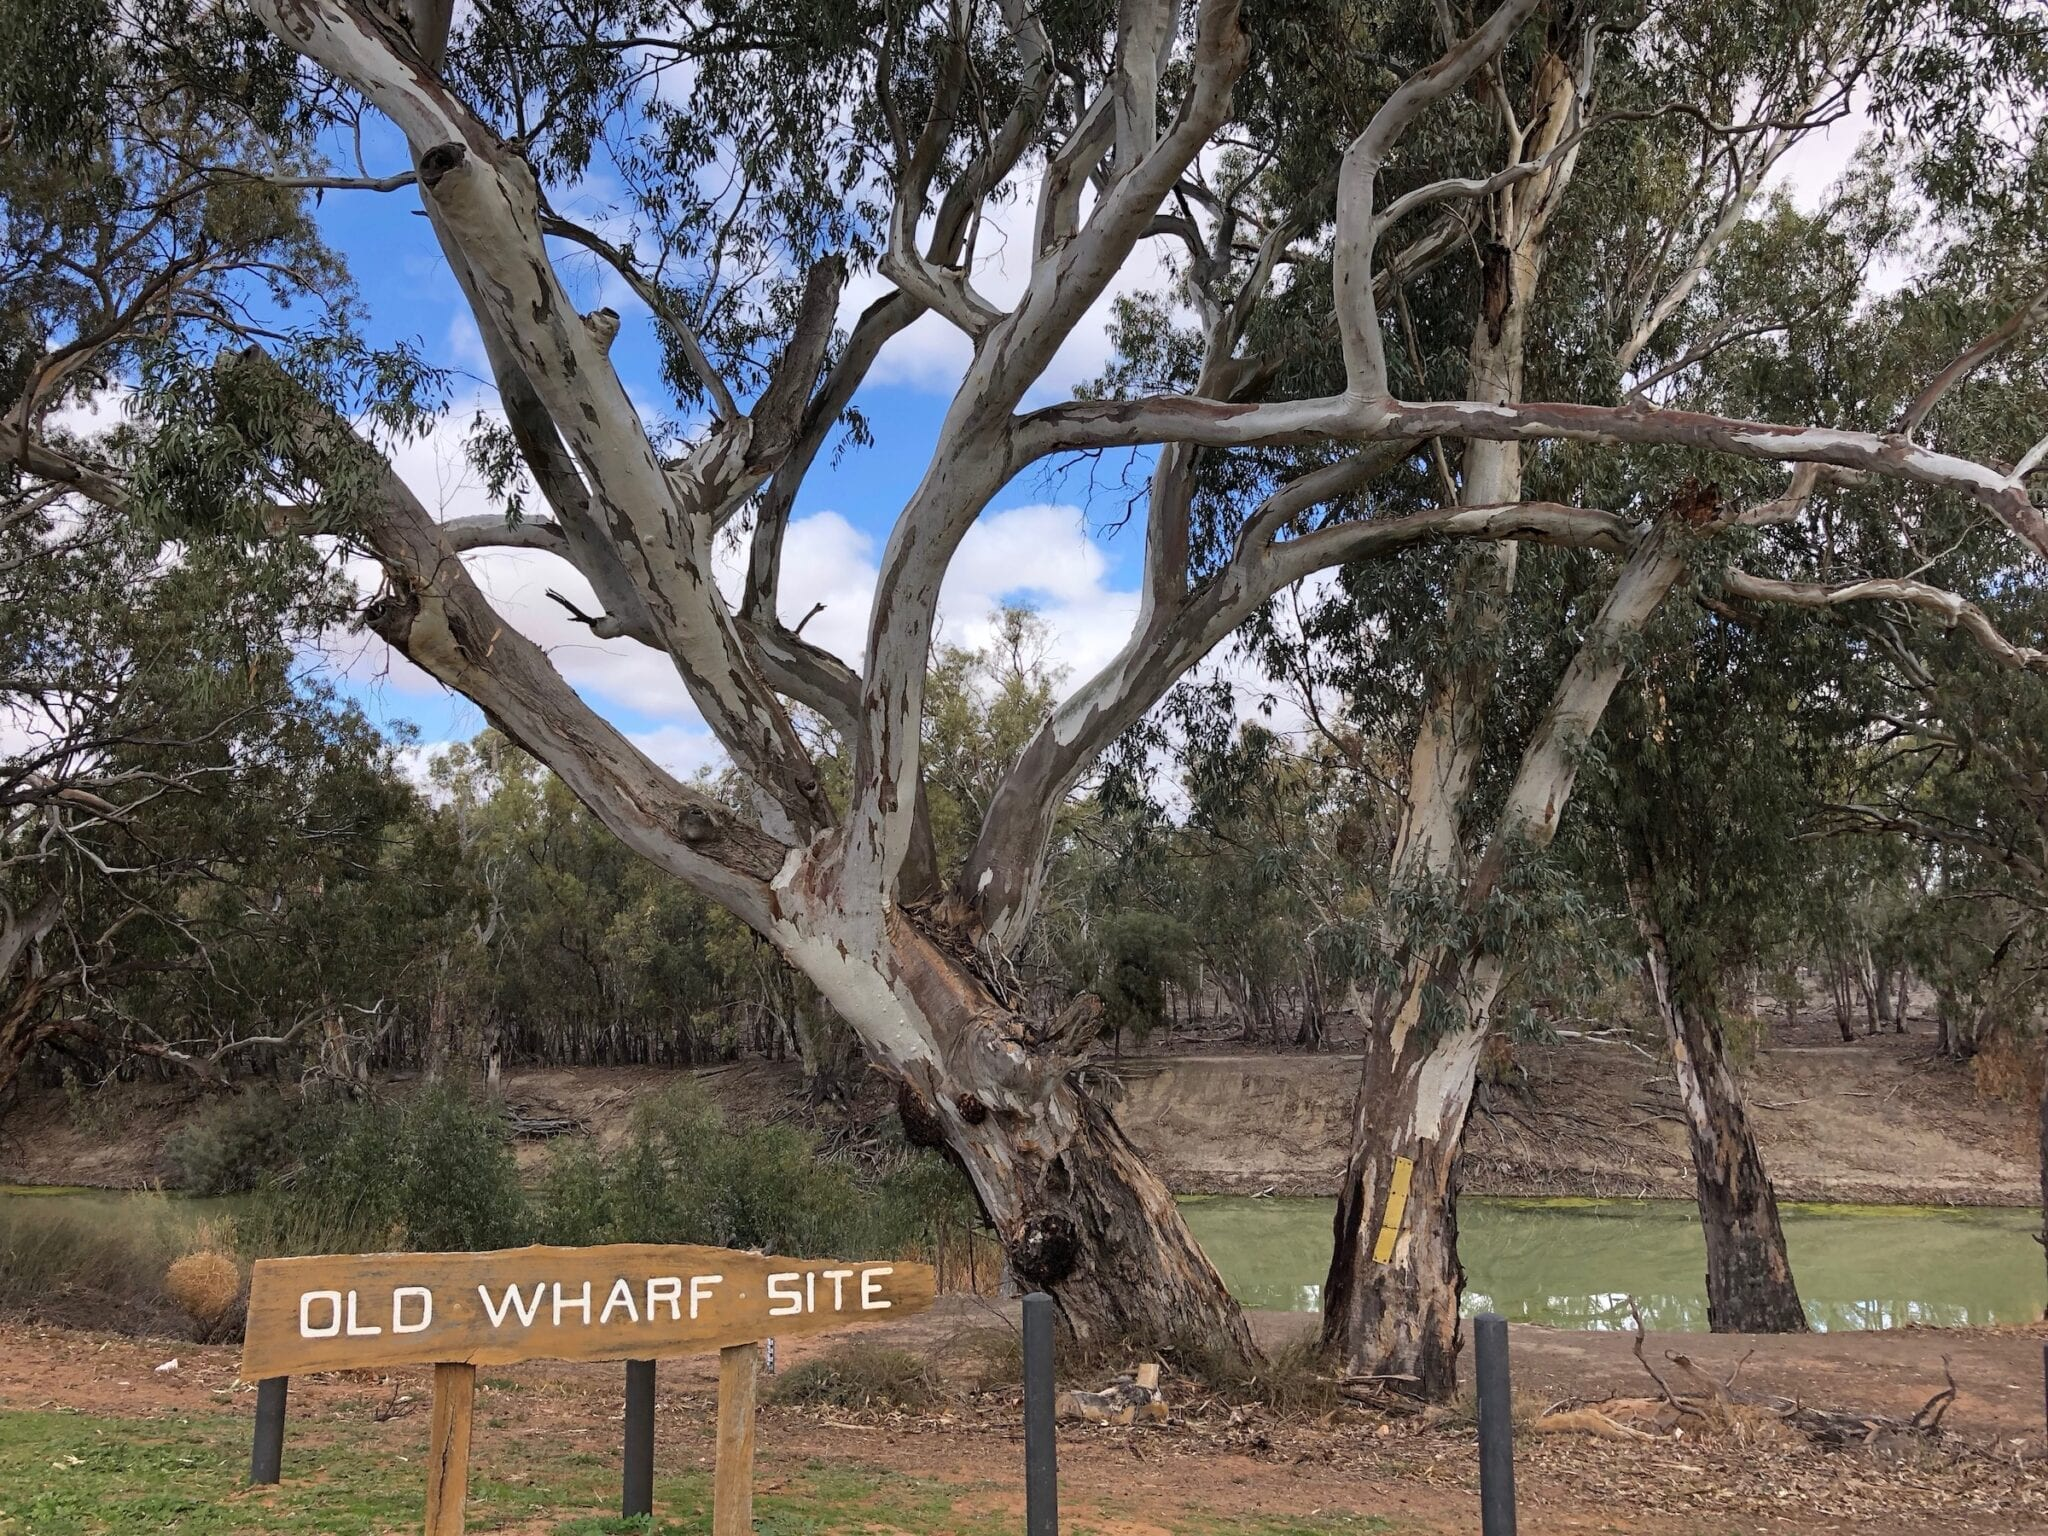 The old wharf site, Darling River Pooncarie NSW.